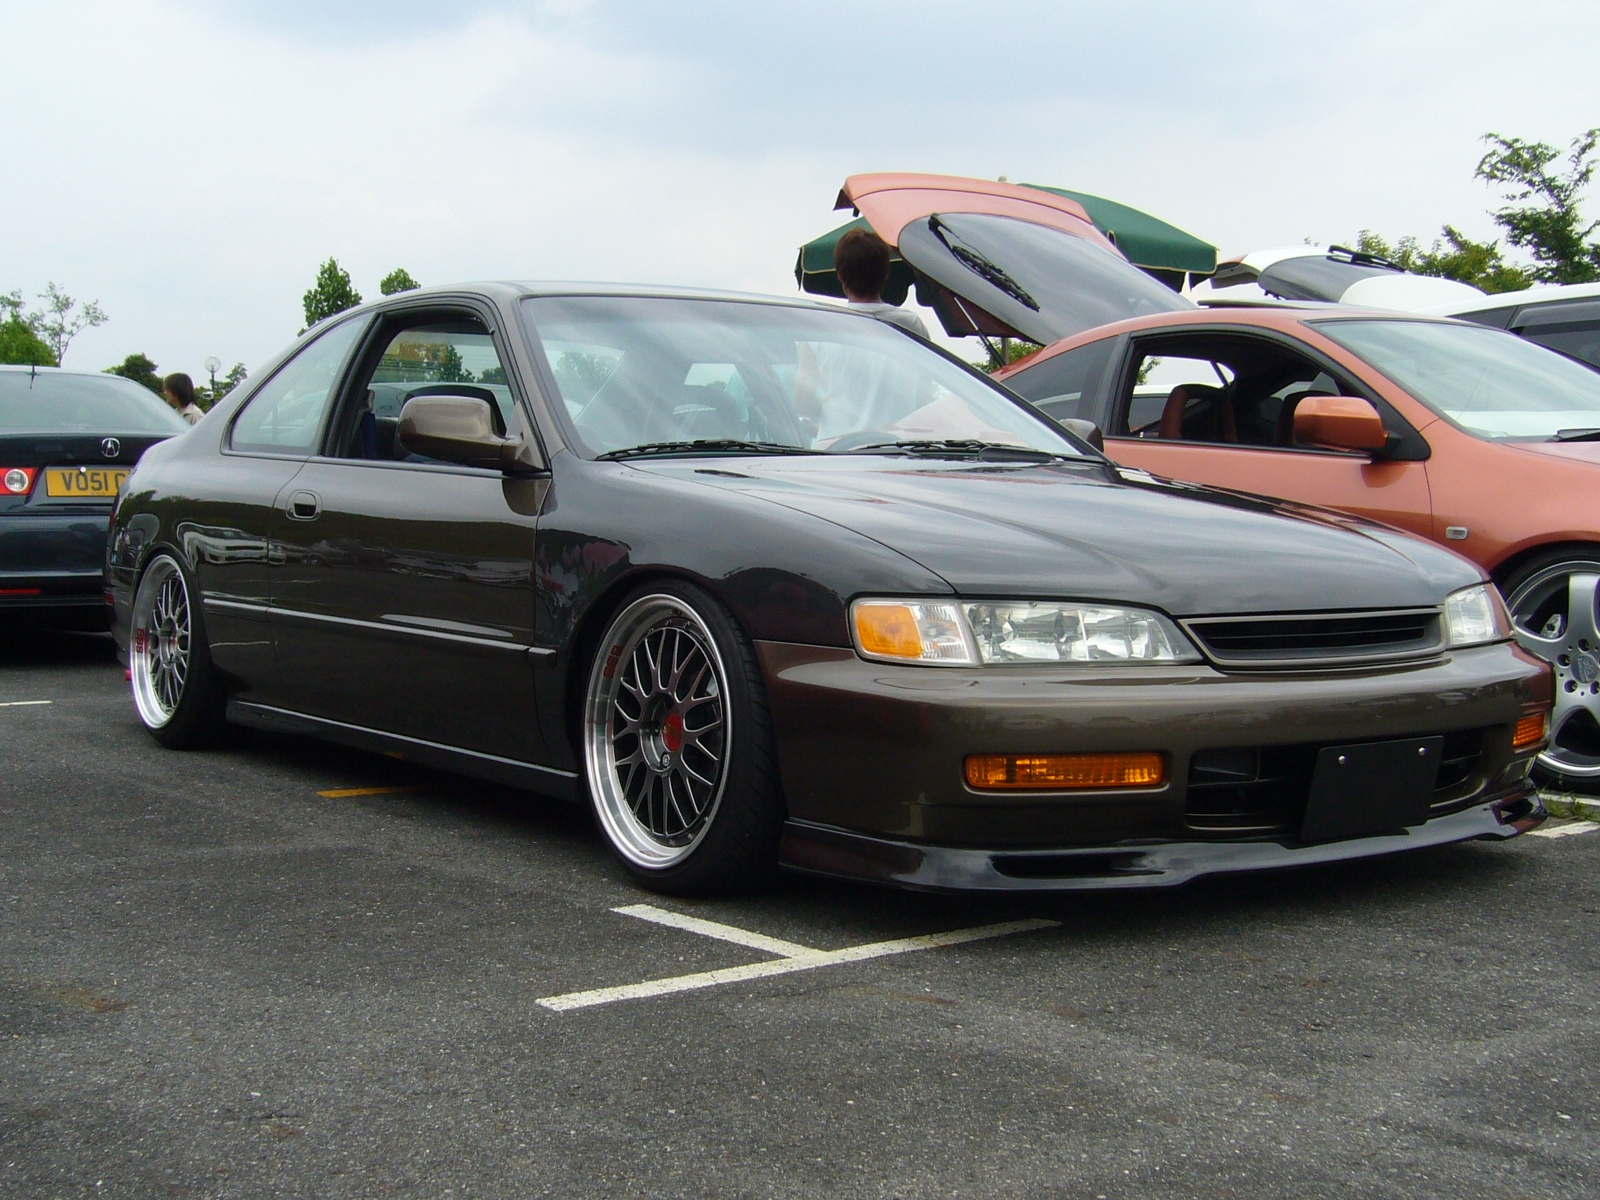 Okasiya K 1994 Honda Accordex Coupe 2d Specs Photos